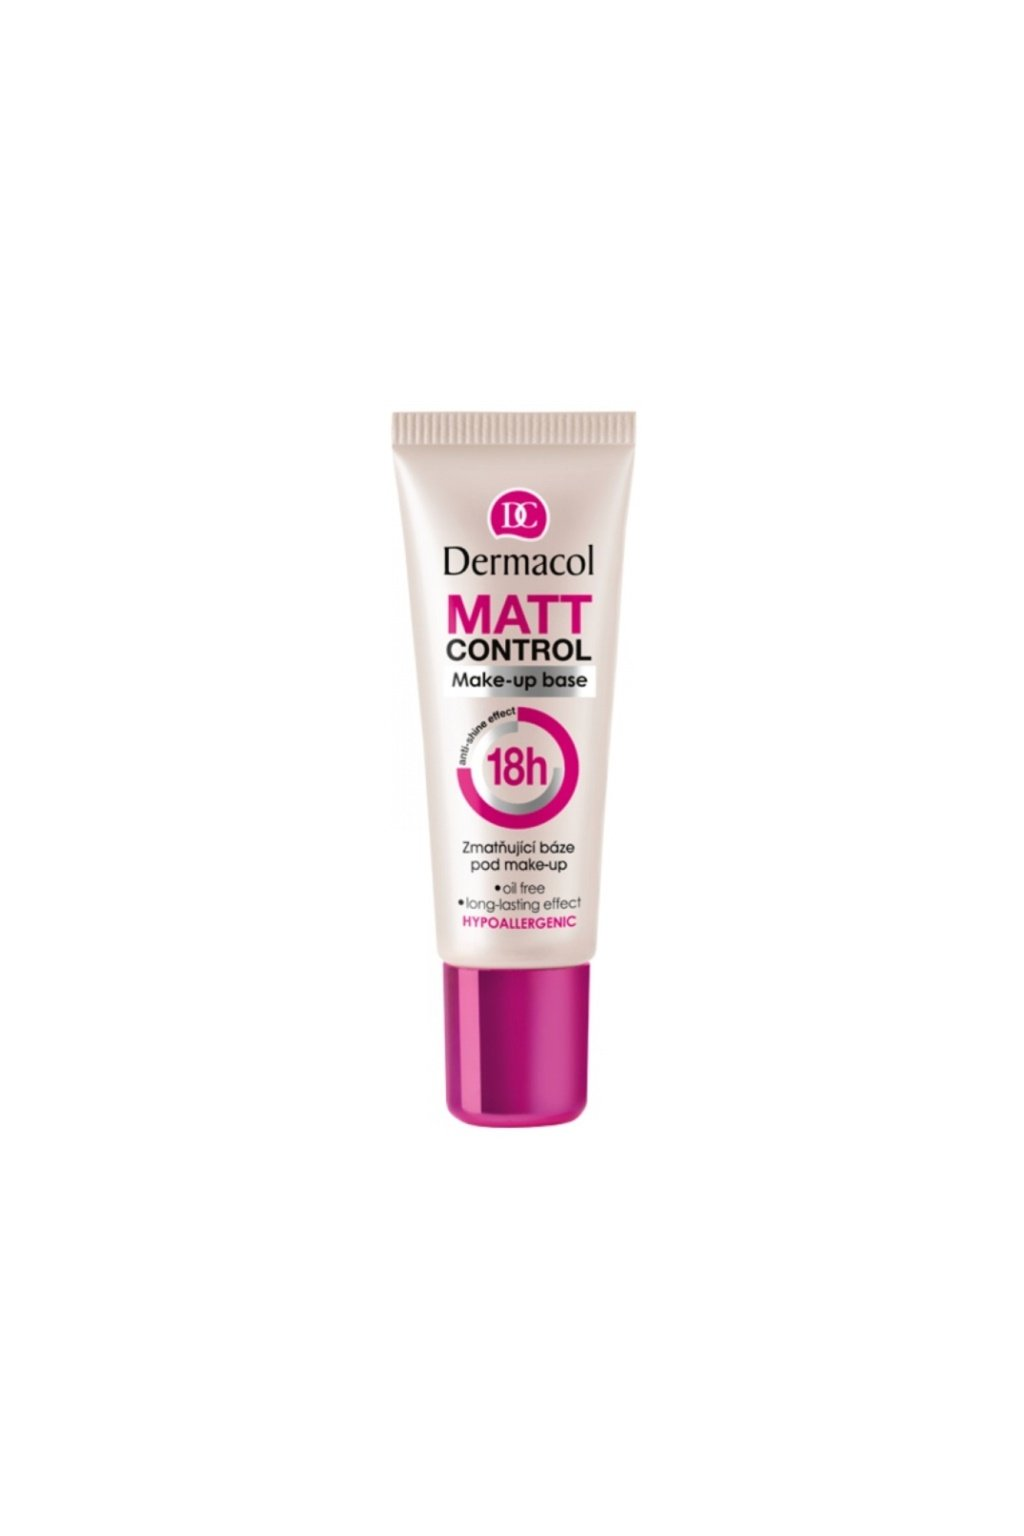 dermacol matt control zmatnujici baze pod make up 24 1